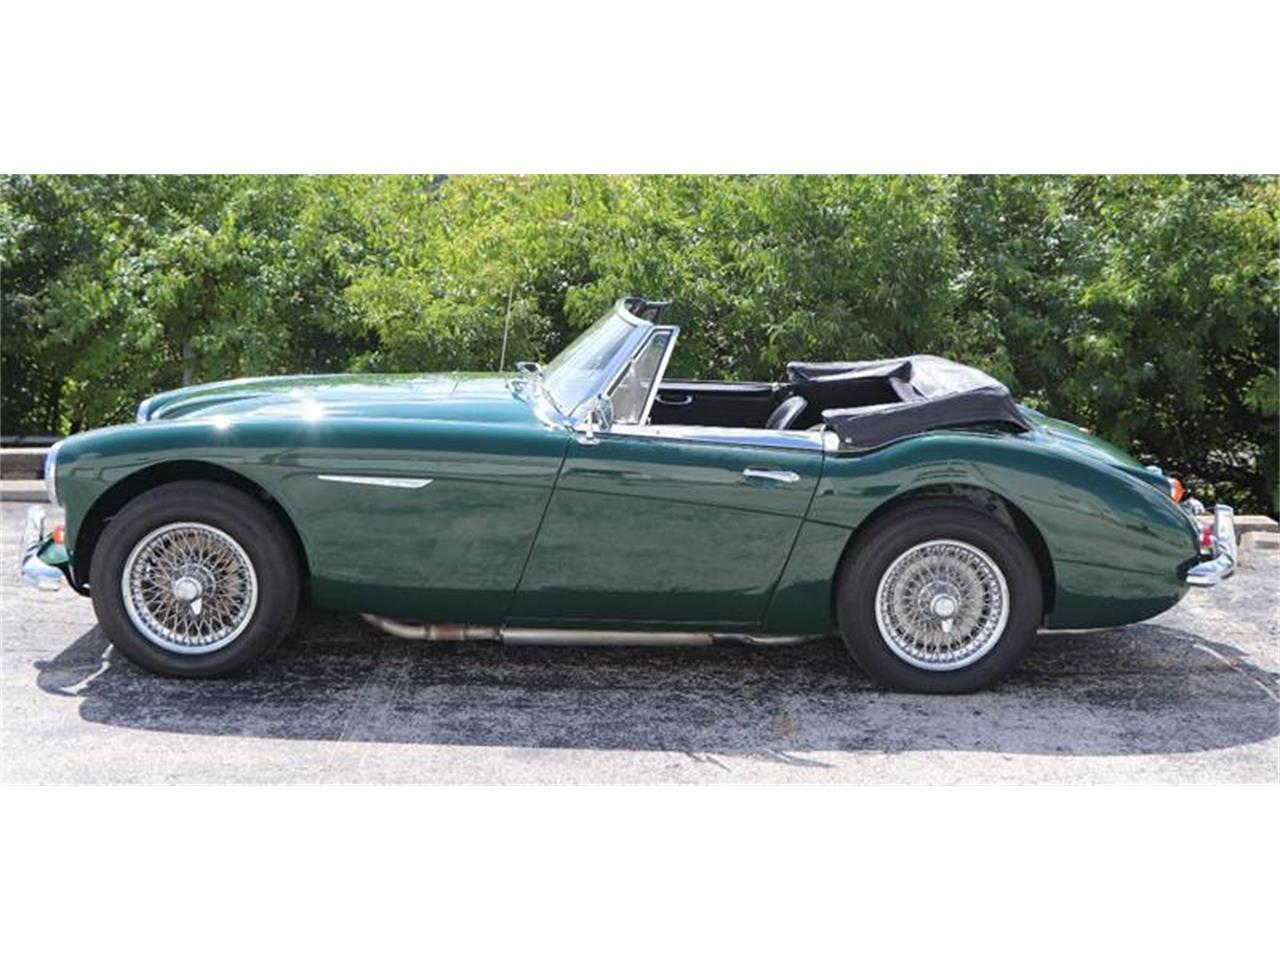 1967 Austin-Healey 3000 Mark III BJ8 for sale in St Louis, MO – photo 5